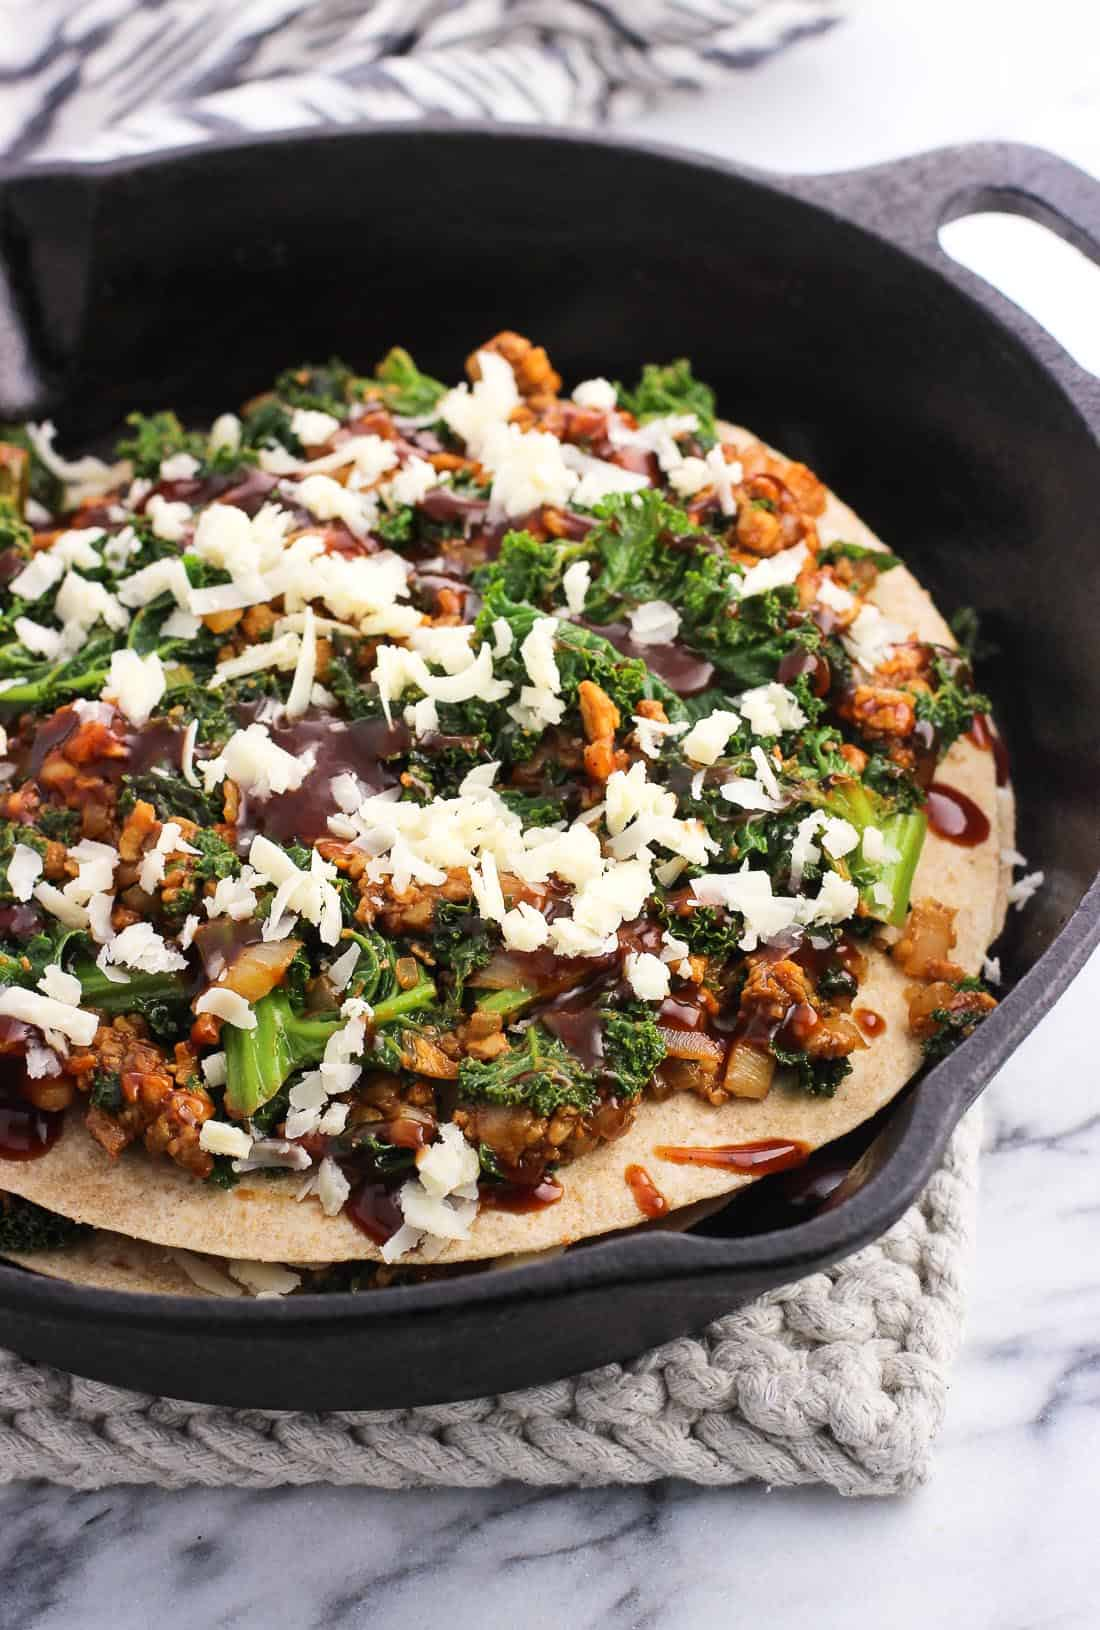 BBQ Tempeh Kale Tortilla Pie is a hearty and delicious vegetarian meal made all in one skillet! This quick recipe makes a great weeknight dinner. It's perfect for Meatless Monday - or any day.